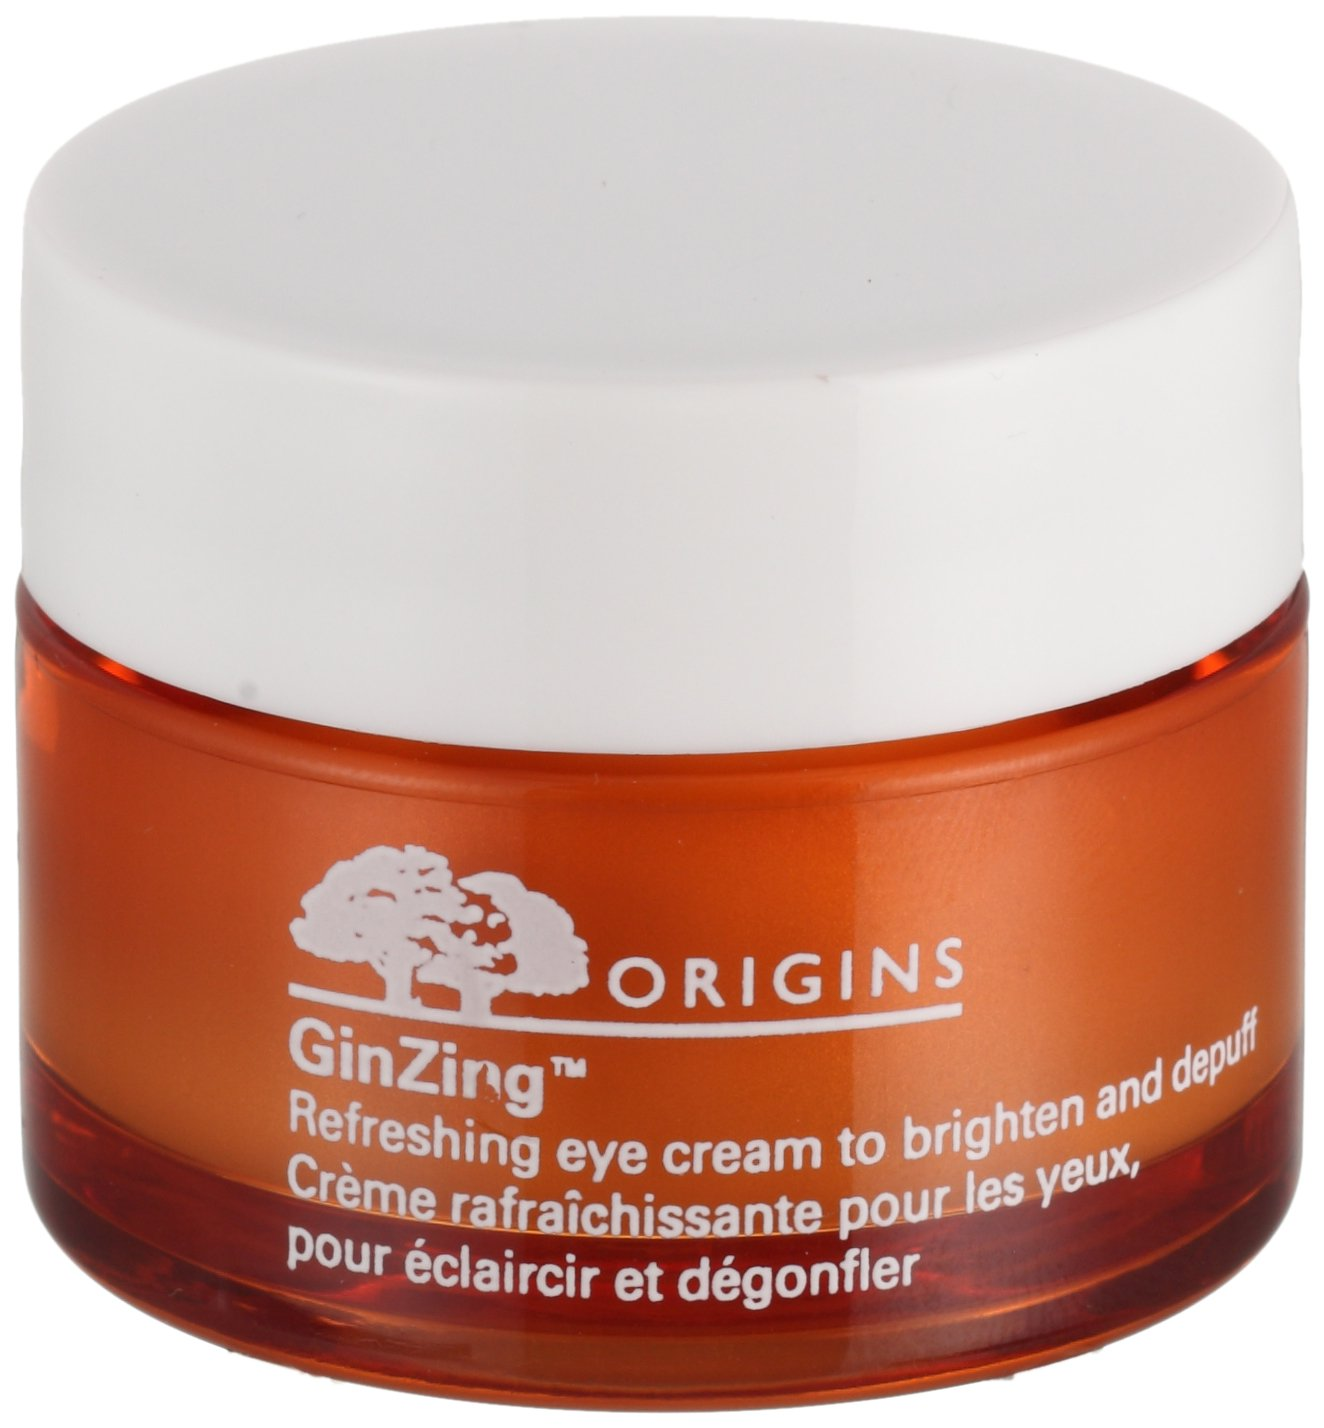 Origins Eye Care 0.5 Oz Ginzing Refreshing Eye Cream To Brighten And Depuff For Women